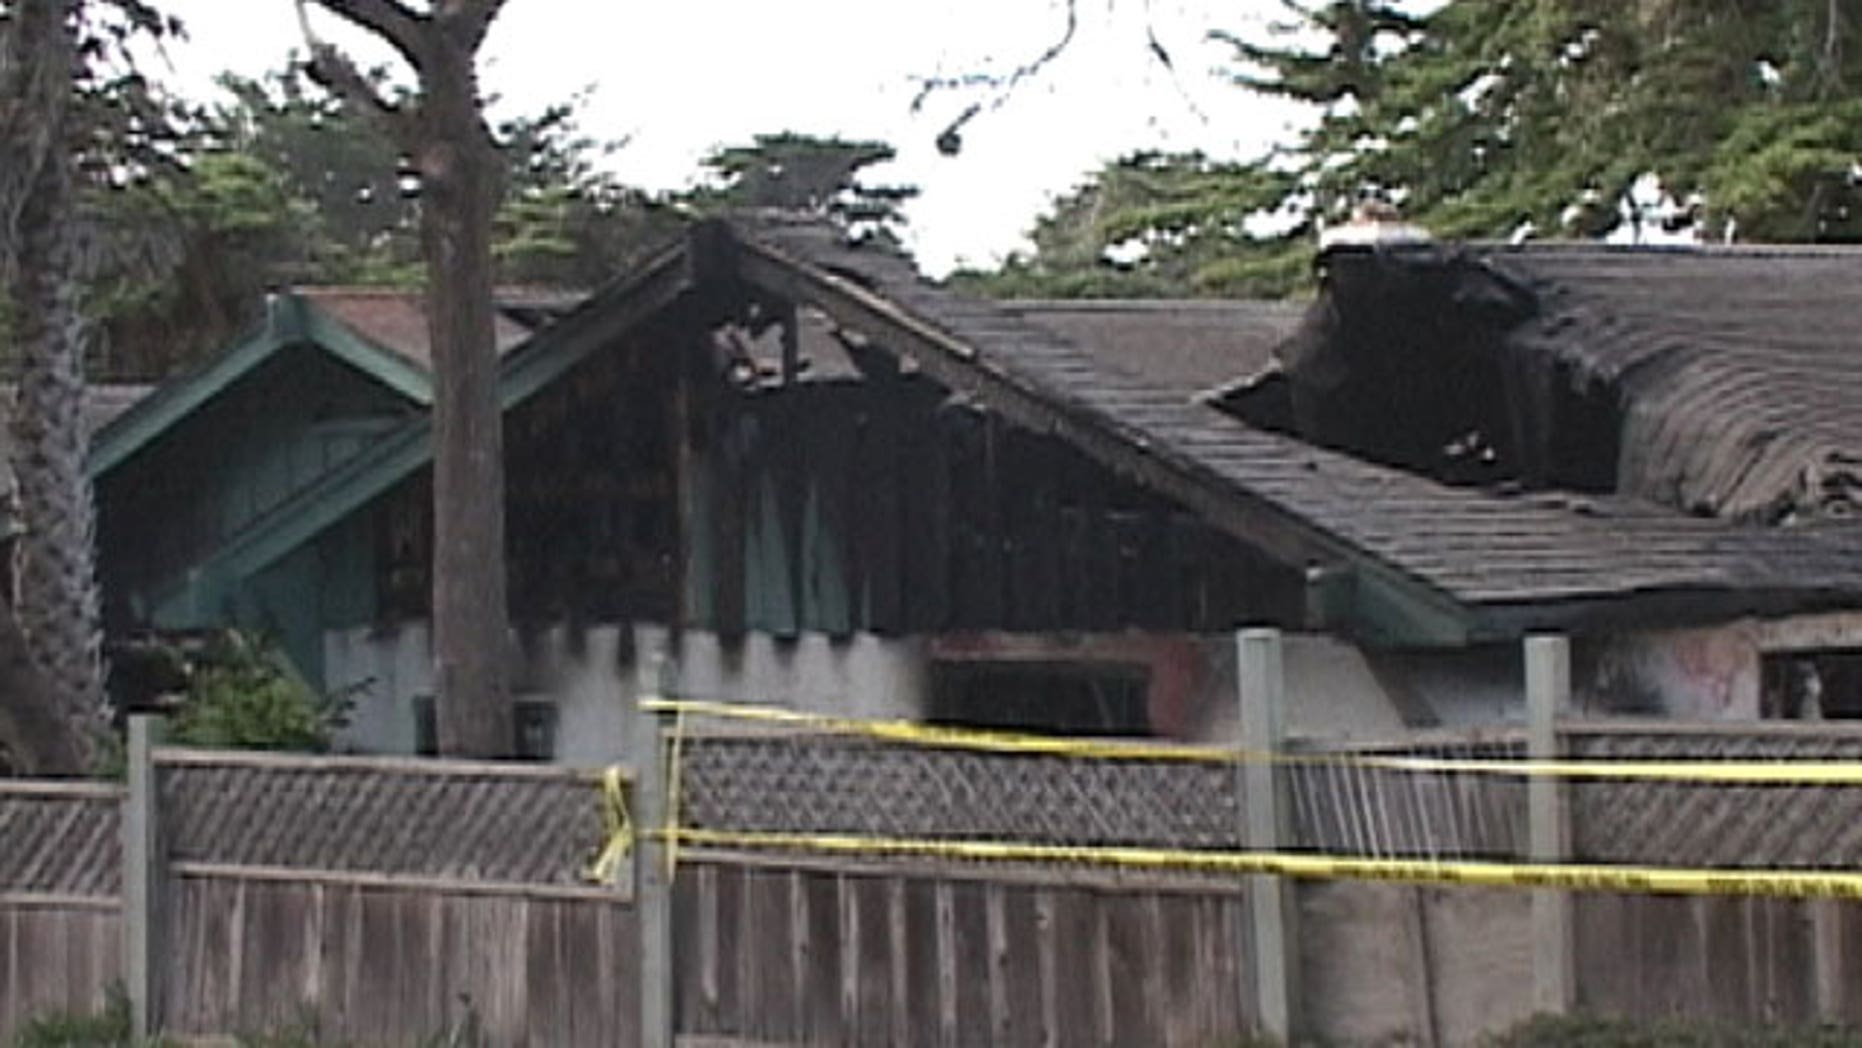 November 6, 2011: This image, made from video, provided by KSBW-TV shows damage caused by a late Saturday night fire at a home care facility for the disabled in Marina, a small coastal community in Monterey County south of San Francisco.